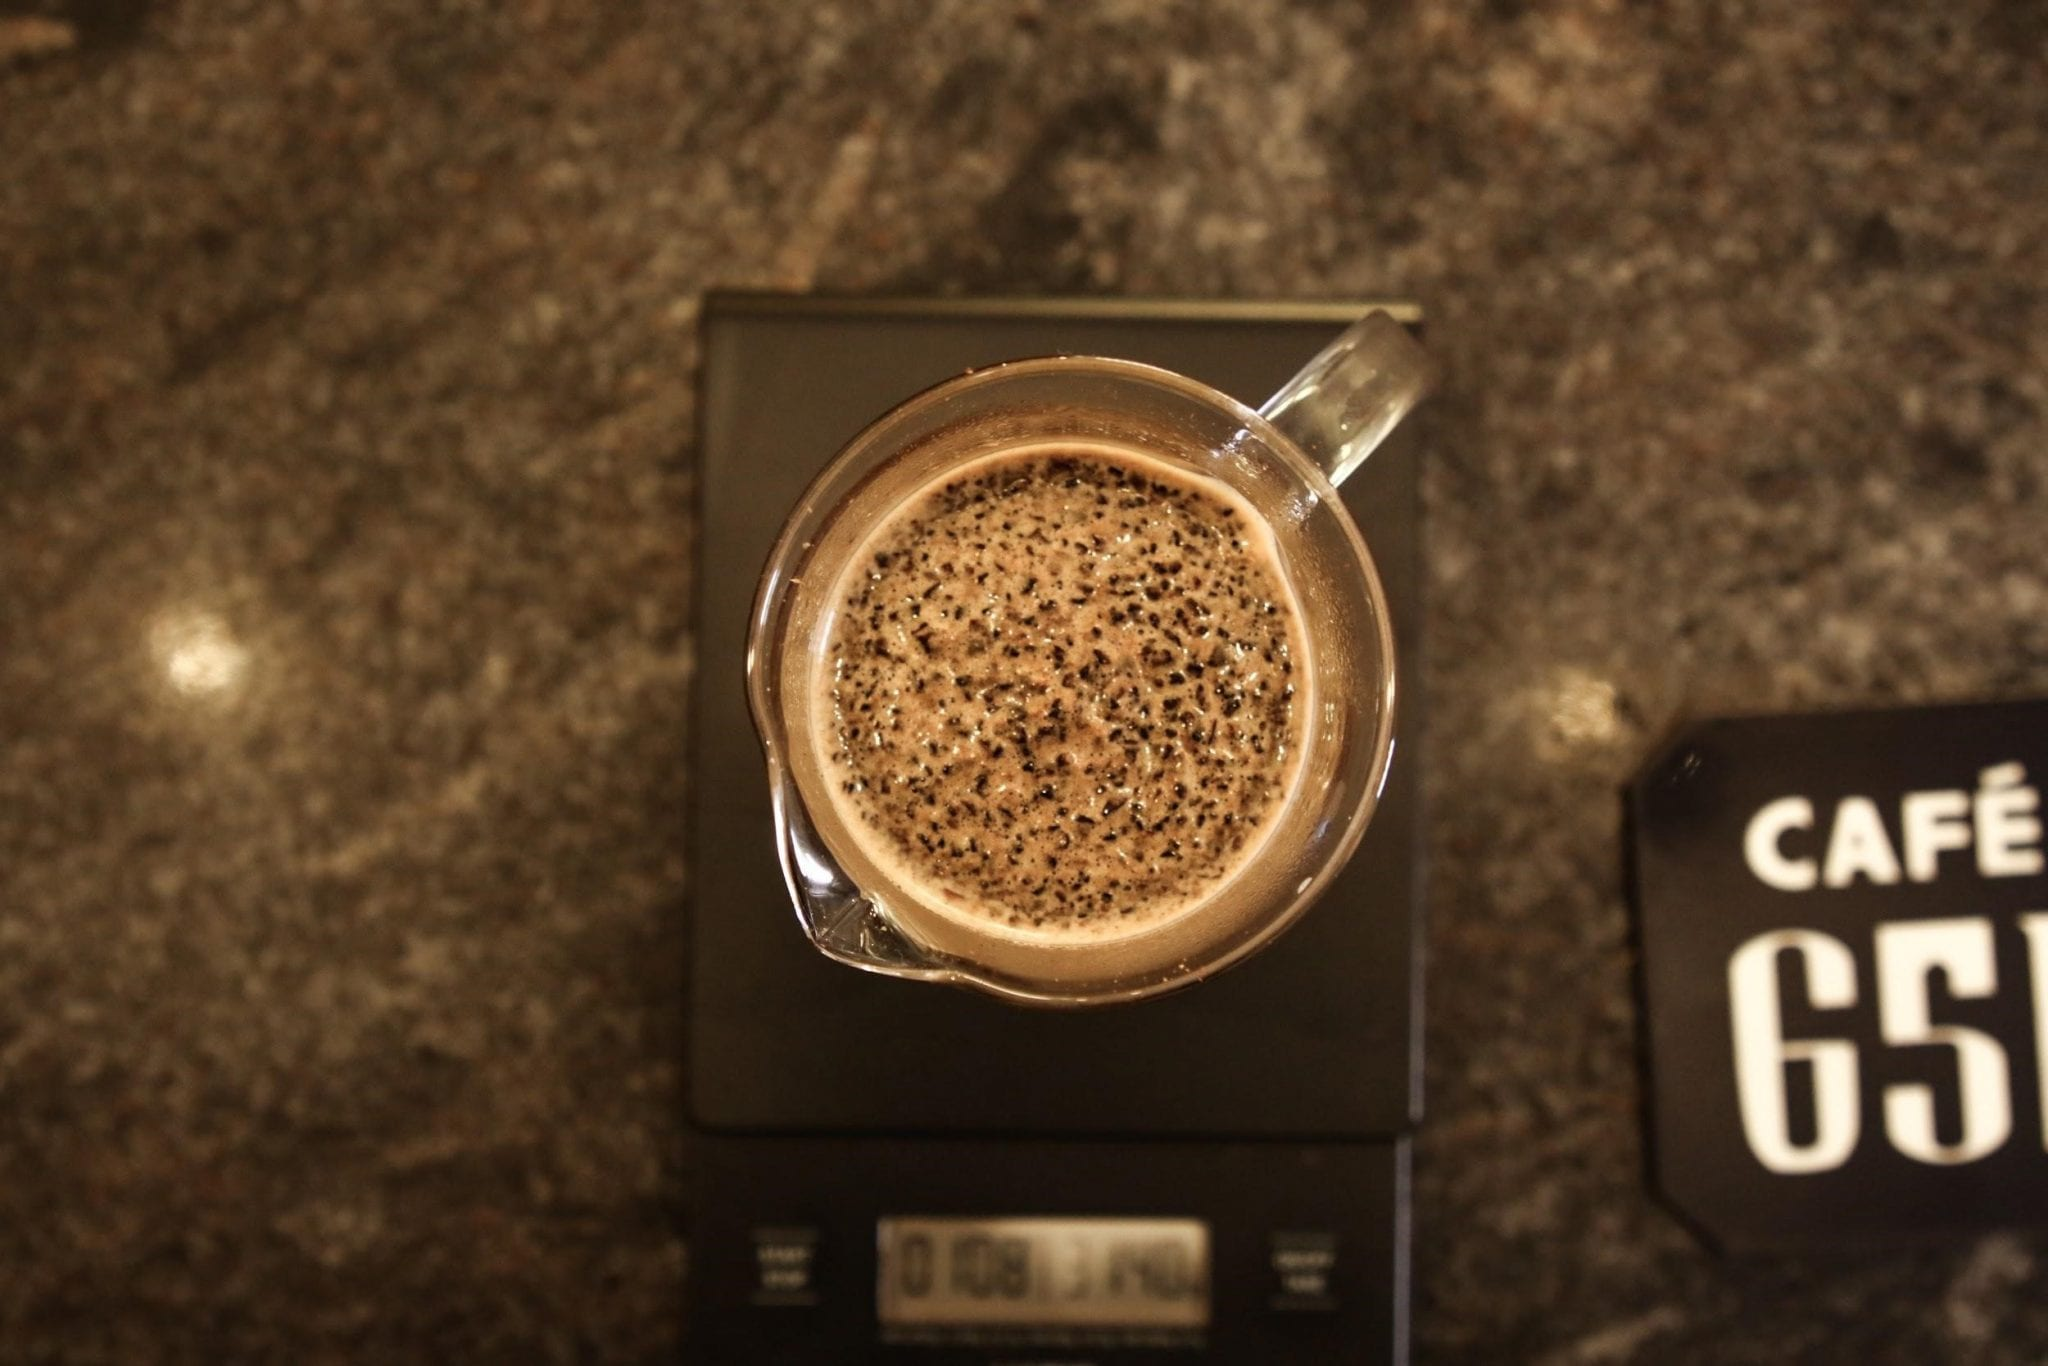 coffee being brewed on a french press